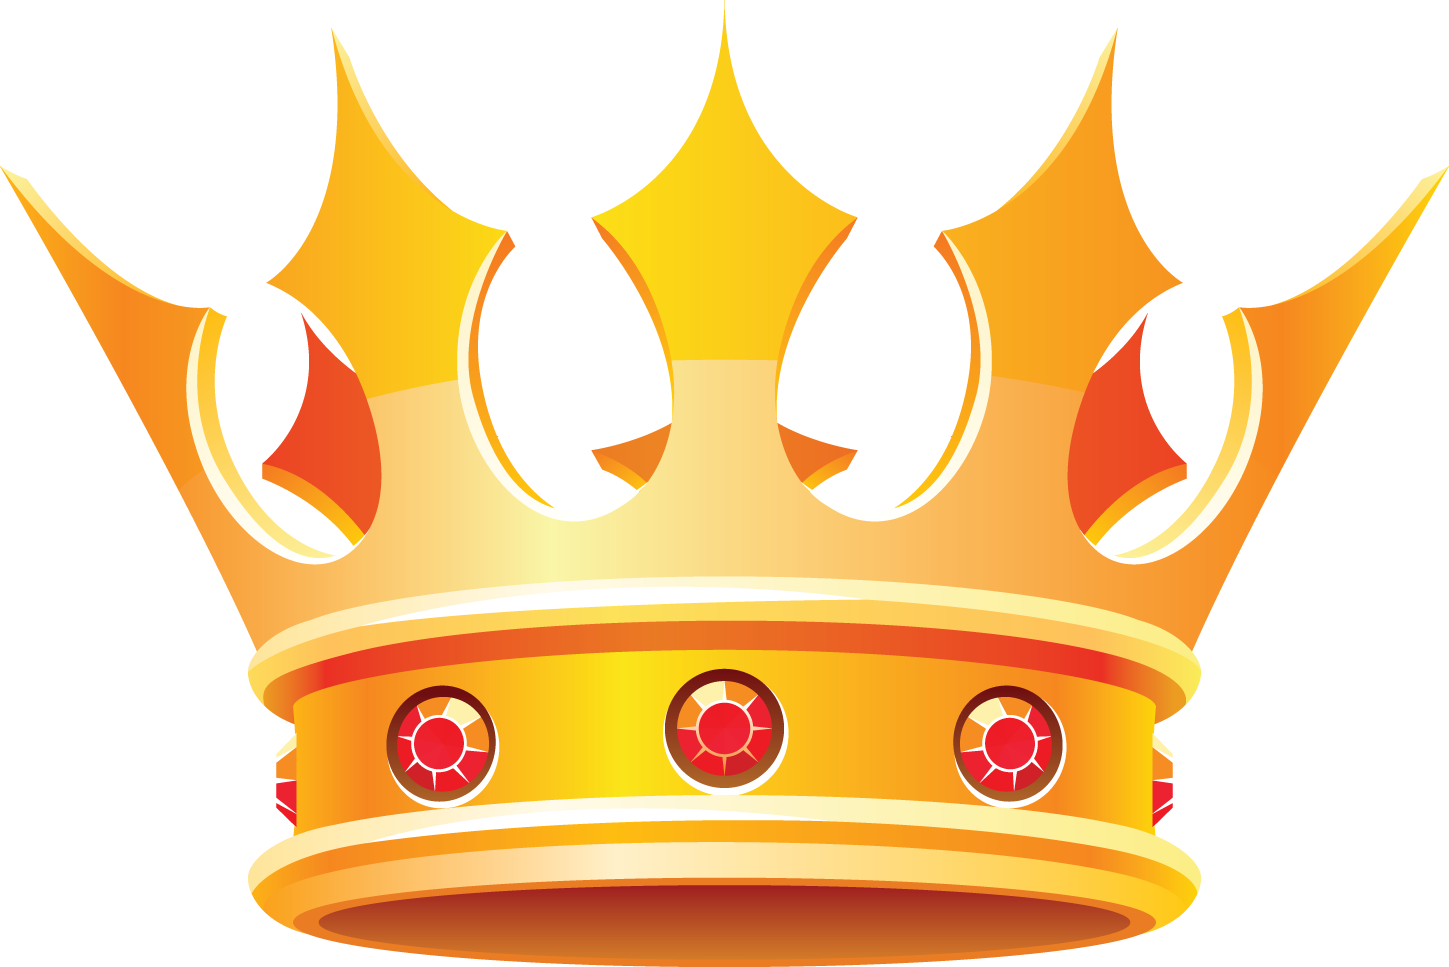 Famous with crown clipart banner library Queen Crown Clipart at GetDrawings.com | Free for personal use Queen ... banner library